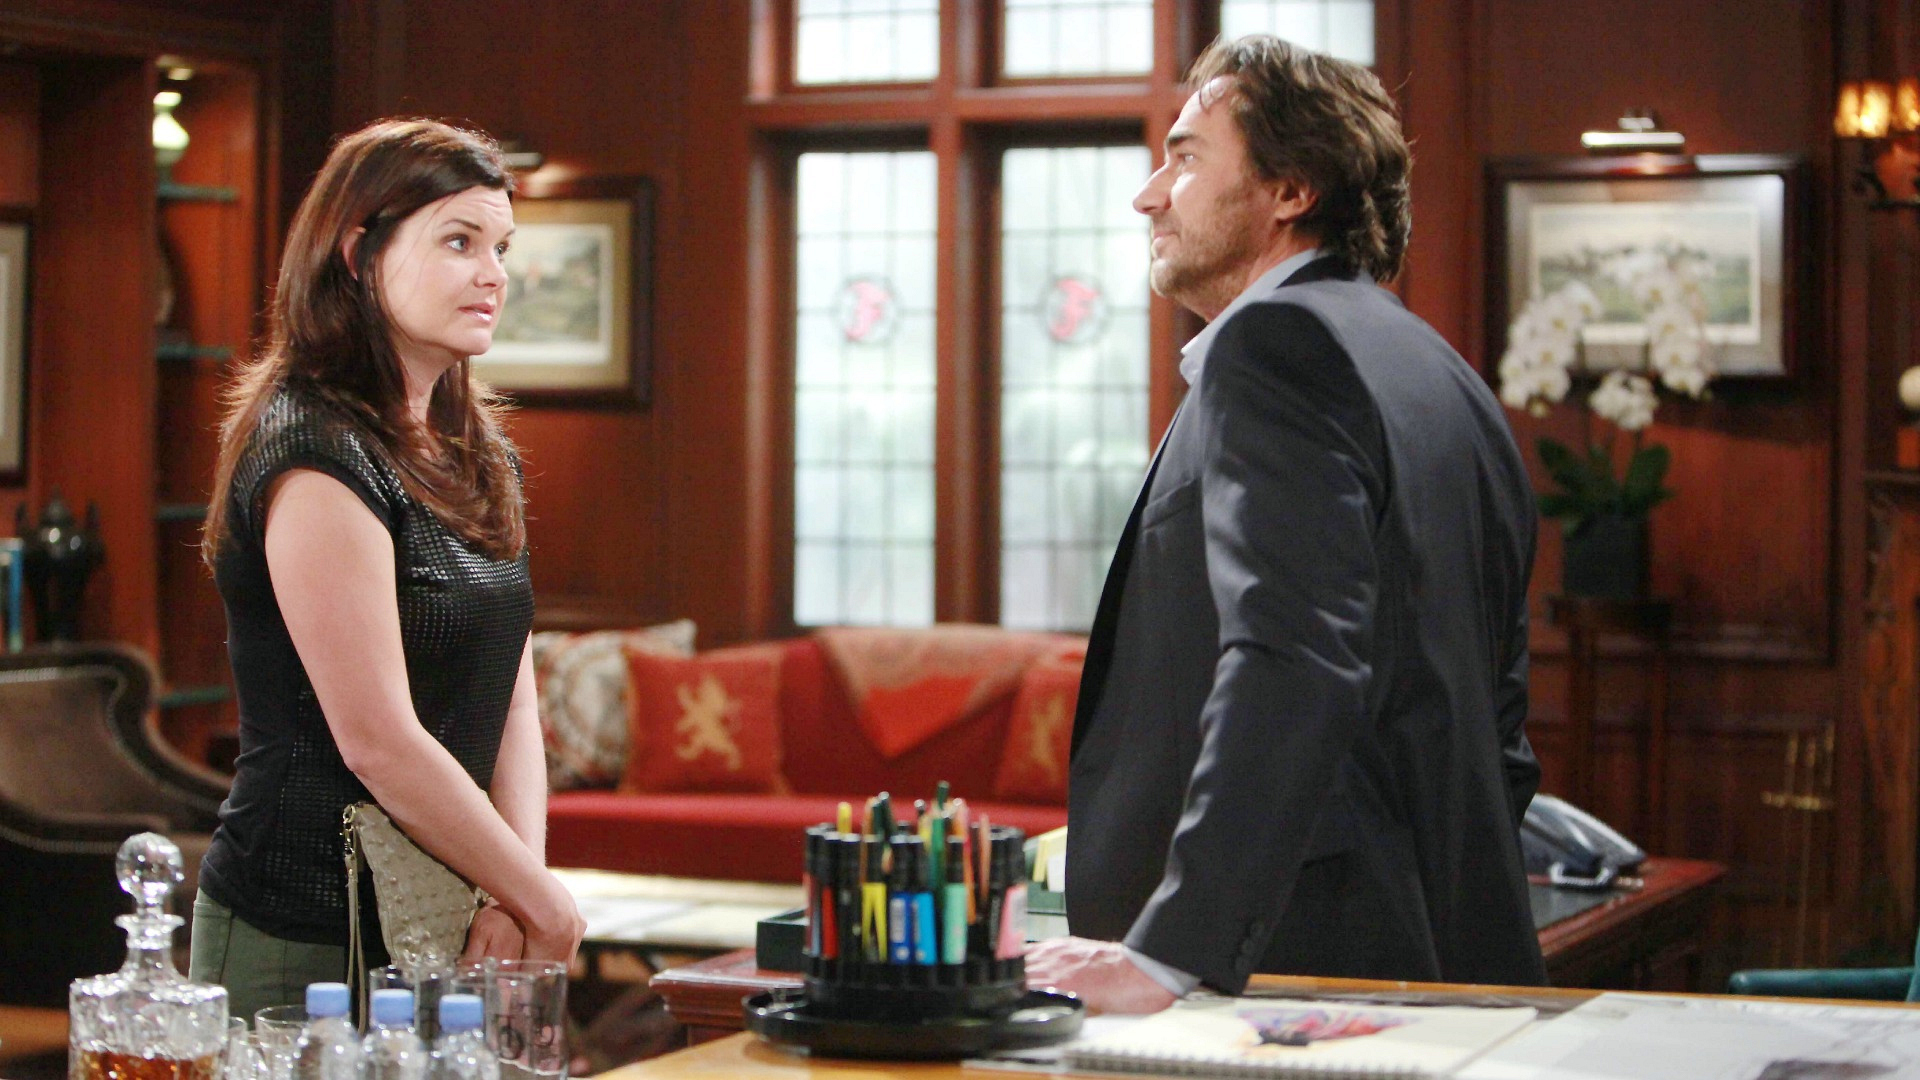 Katie forces the truth out of Ridge.